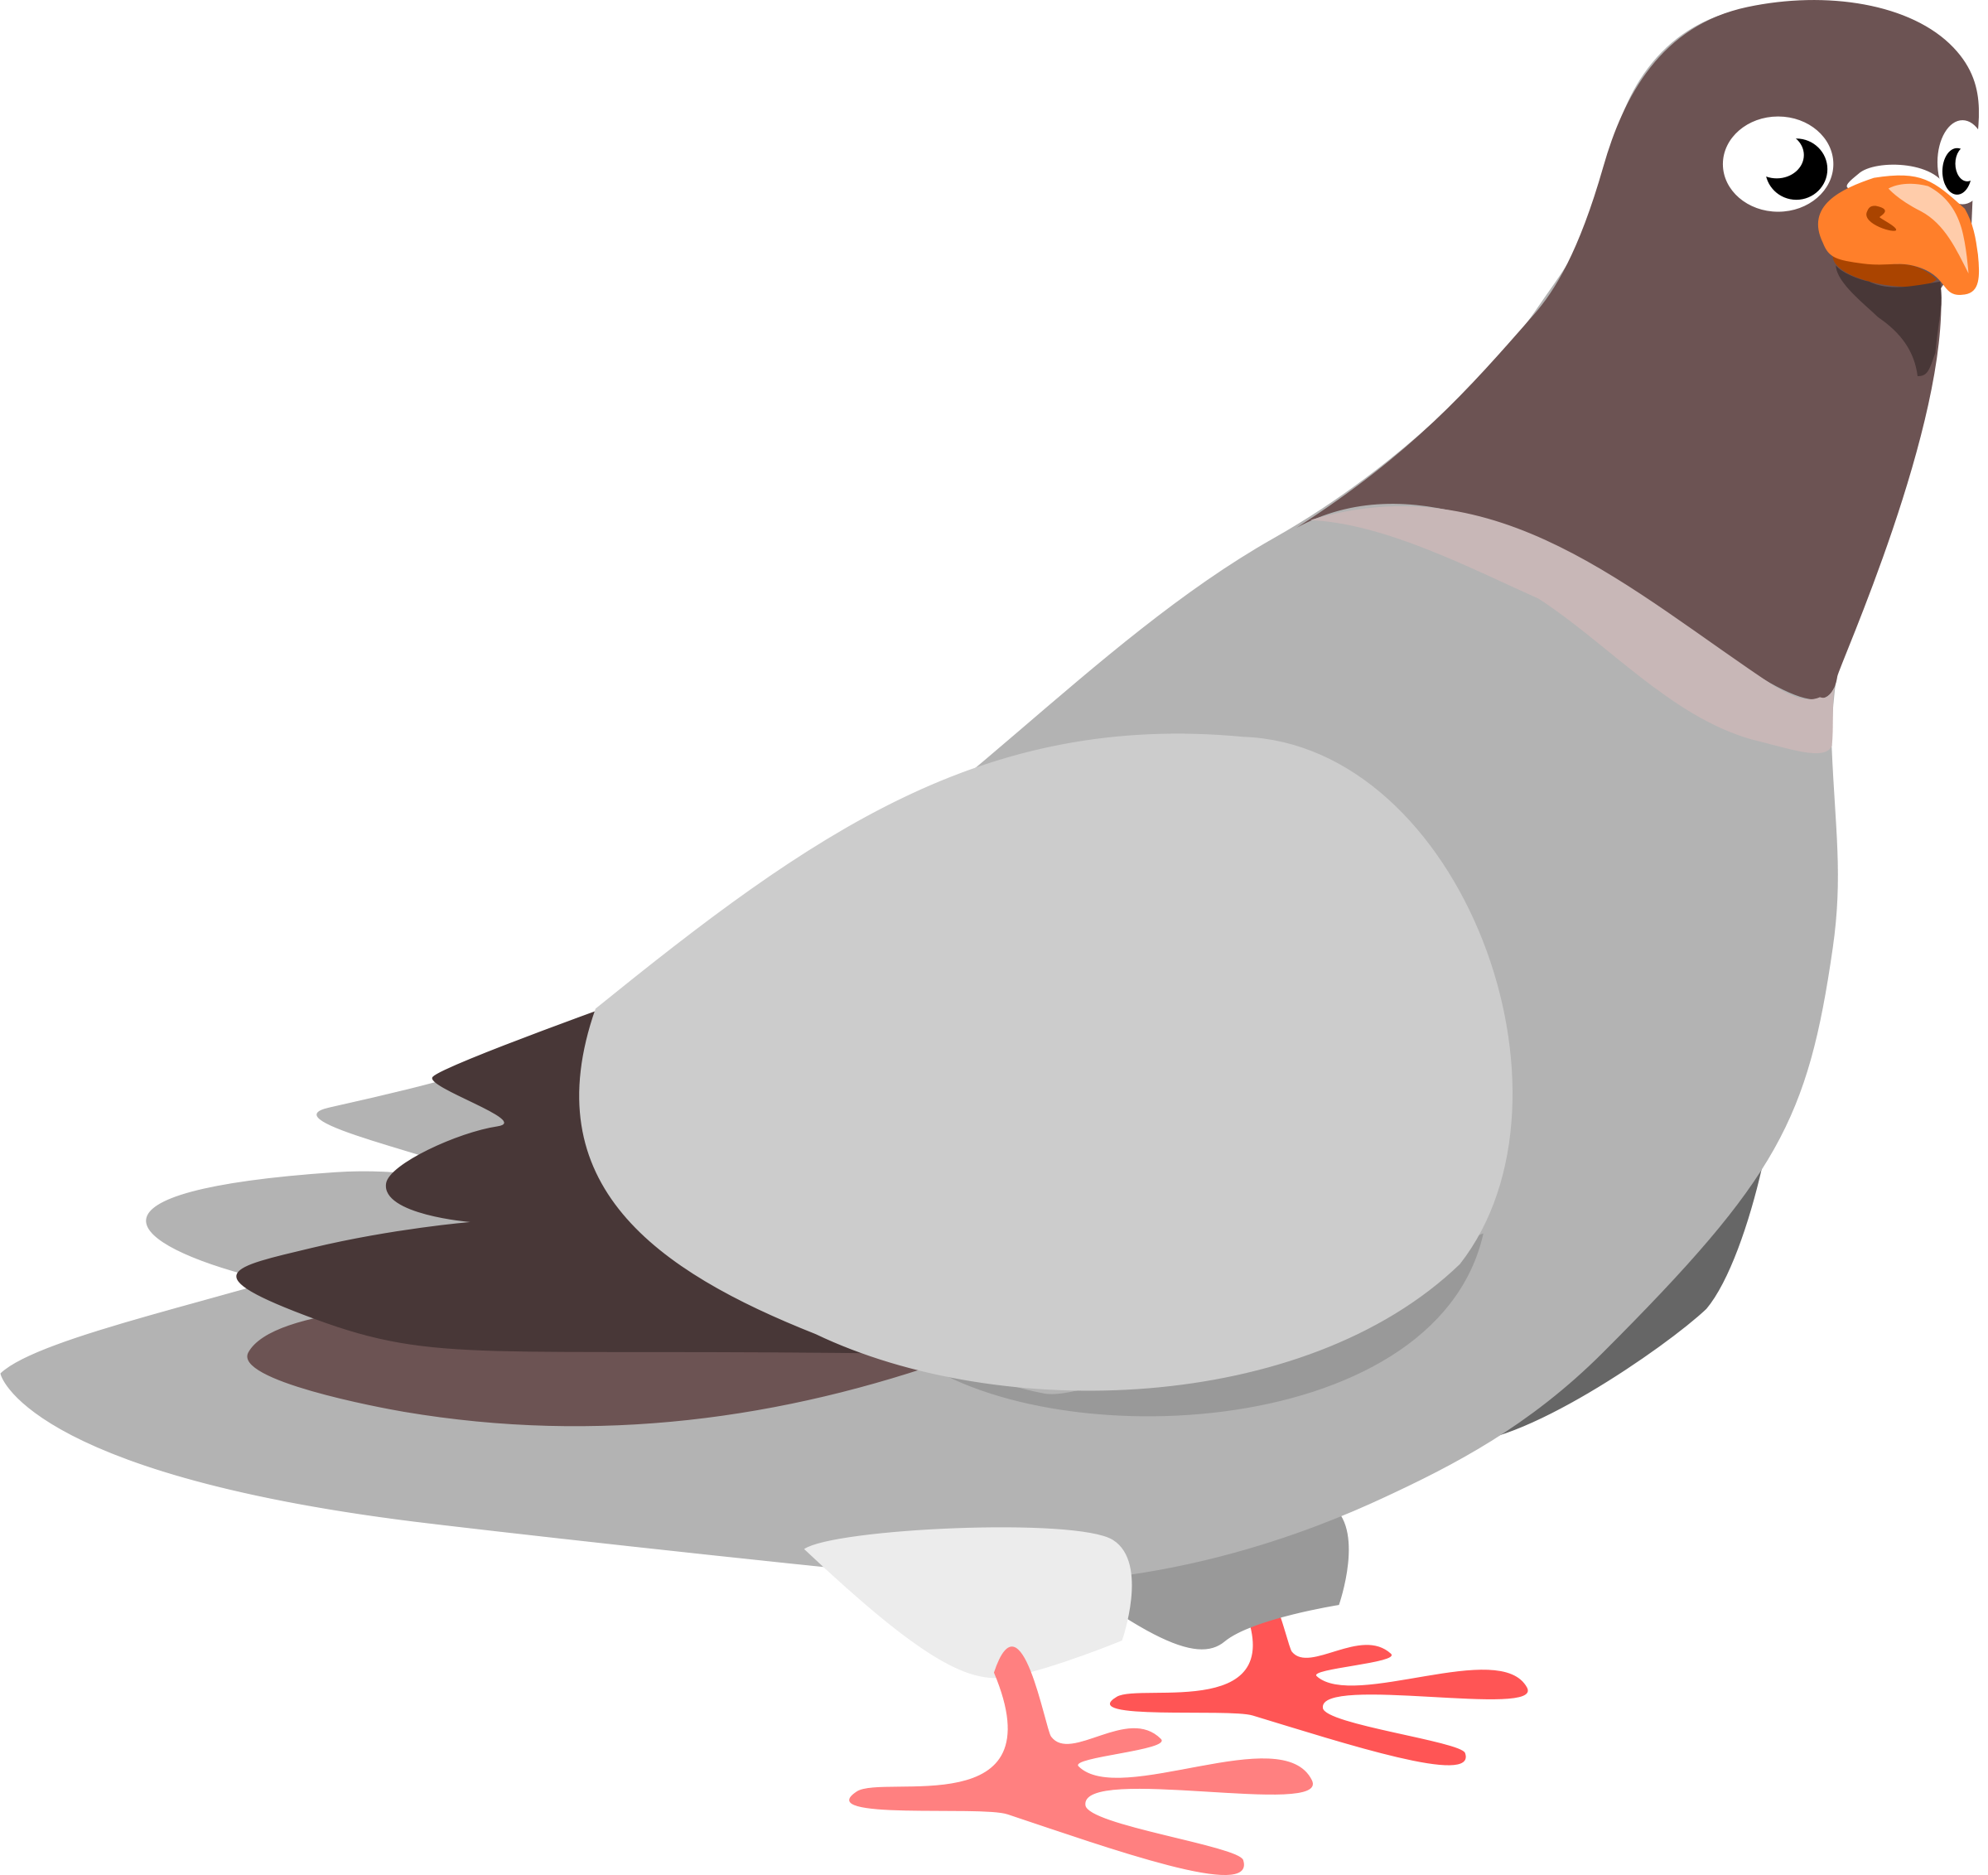 Pigeon clipart #13, Download drawings